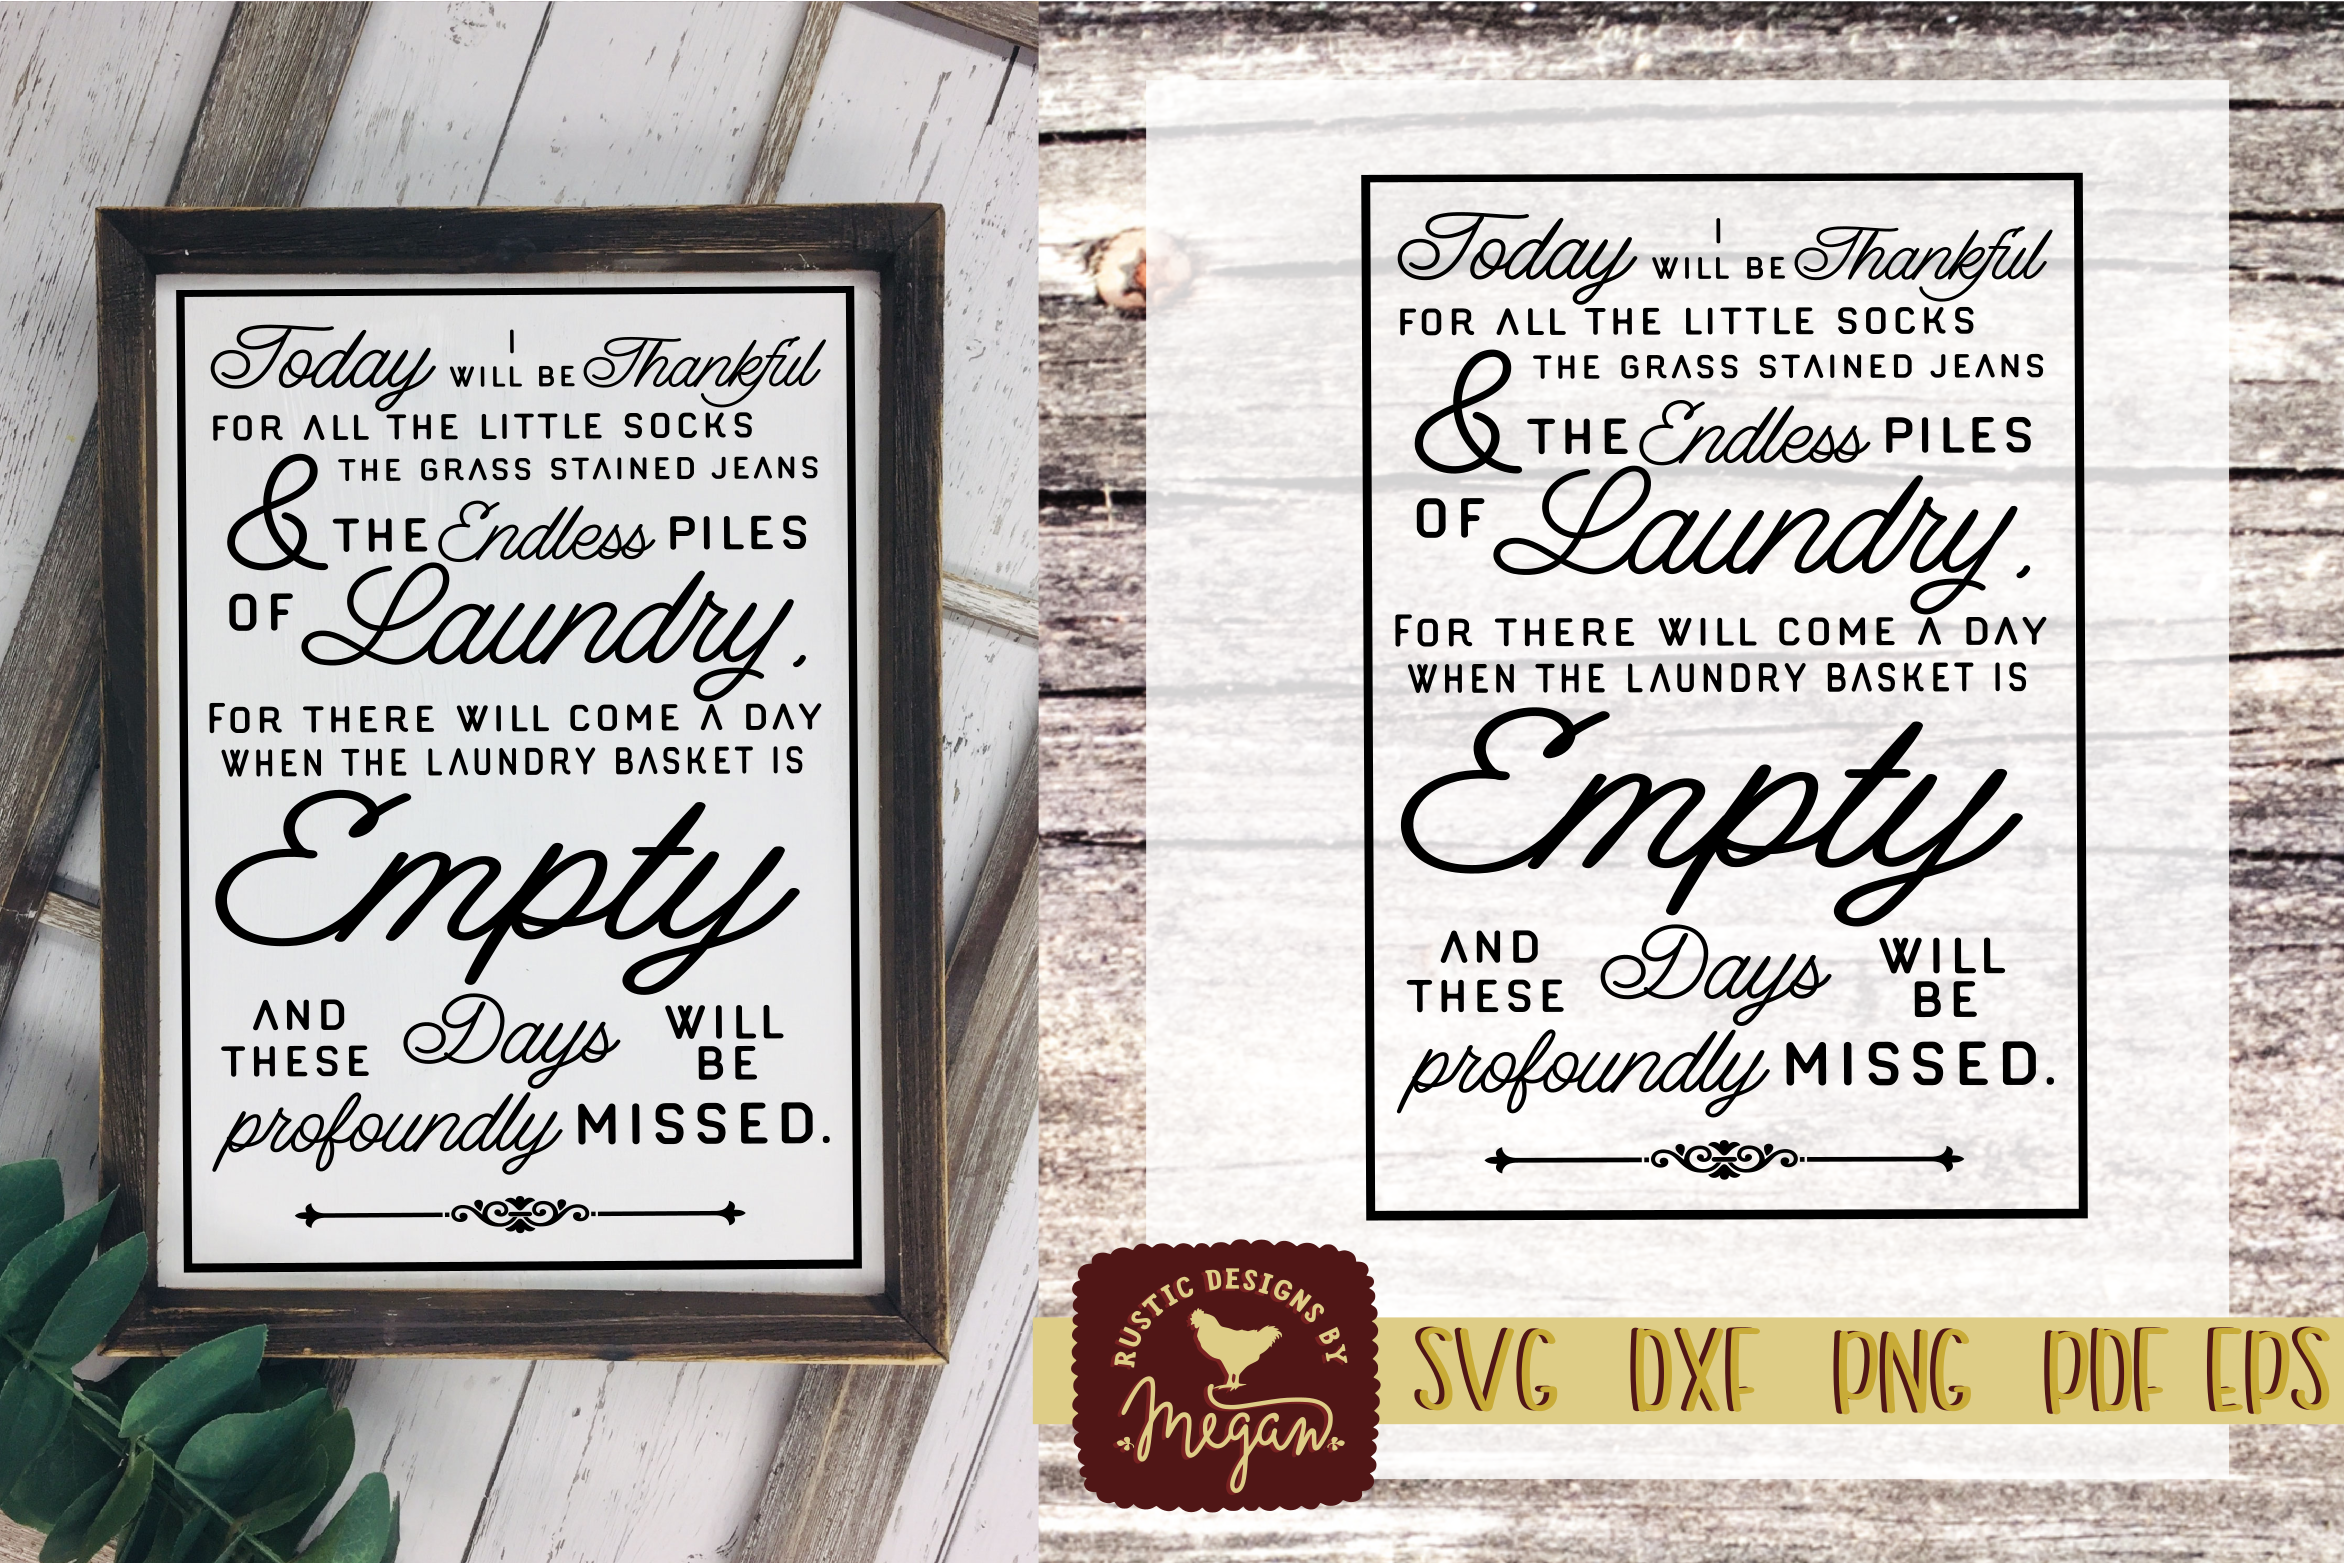 Rustic Laundry Thankful for Little Socks Farmhouse SVG DXF E example image 1